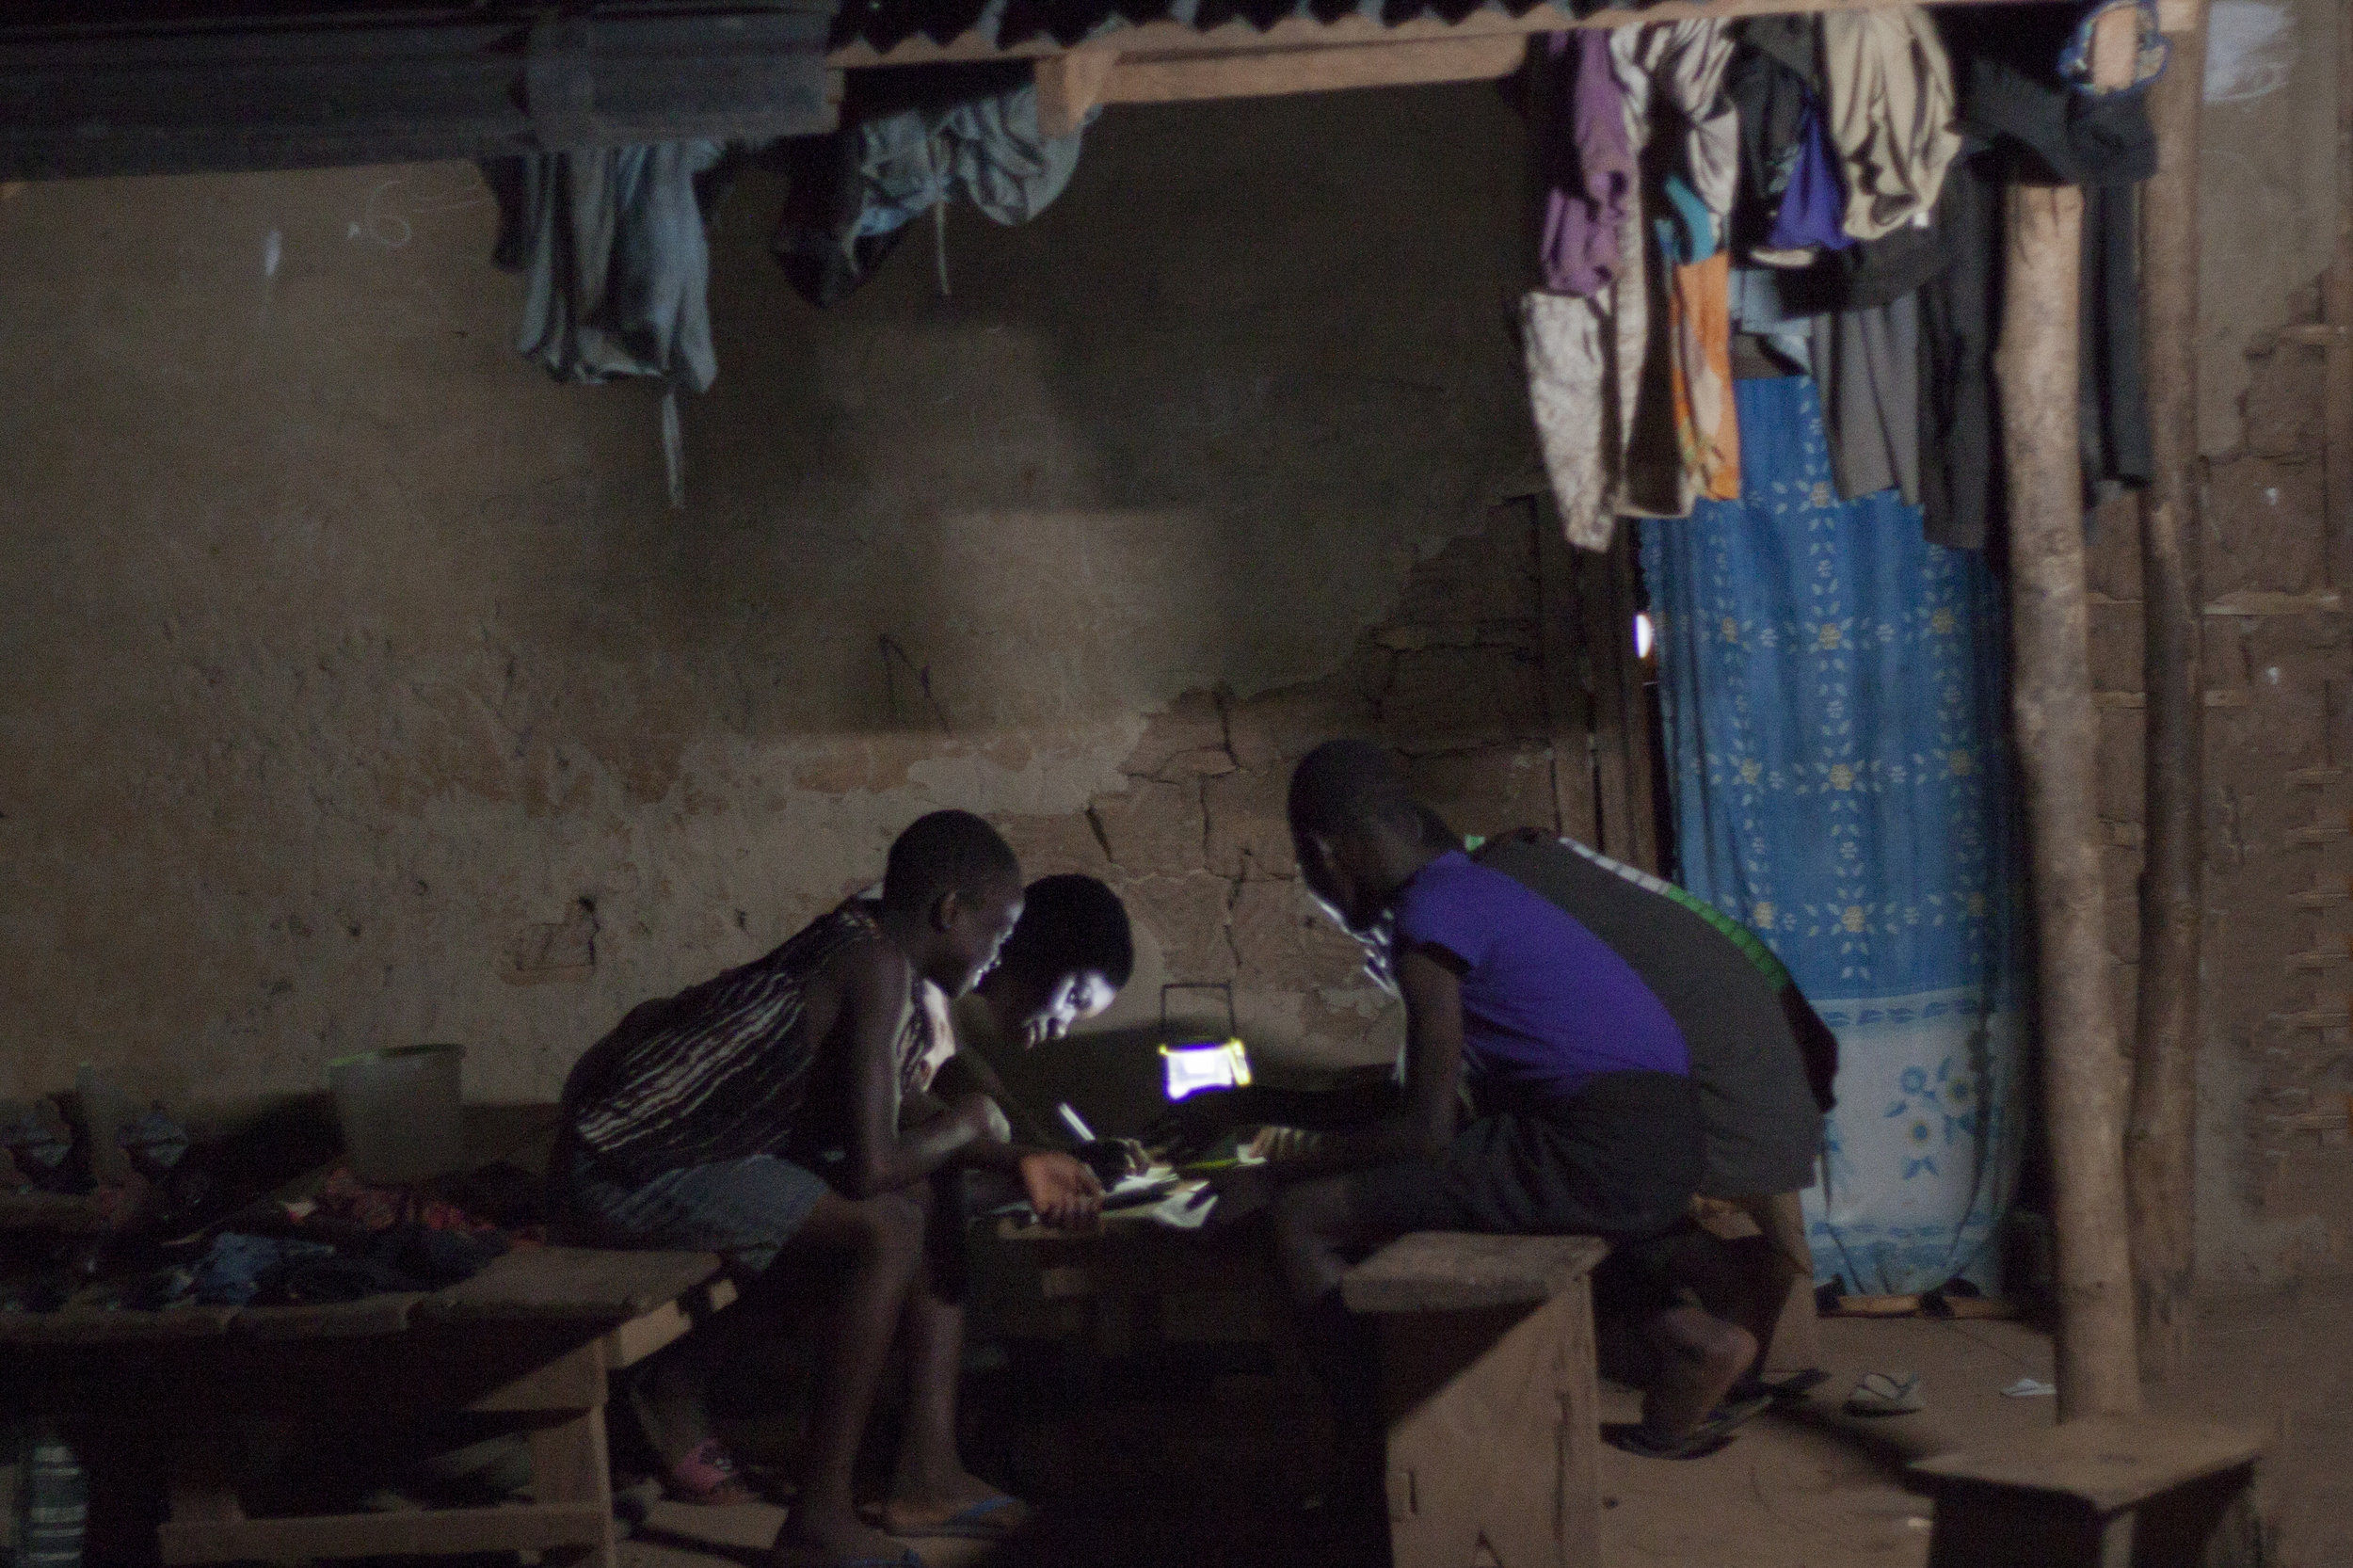 $40 buys a lantern - & Empowers 5 Students to read at night